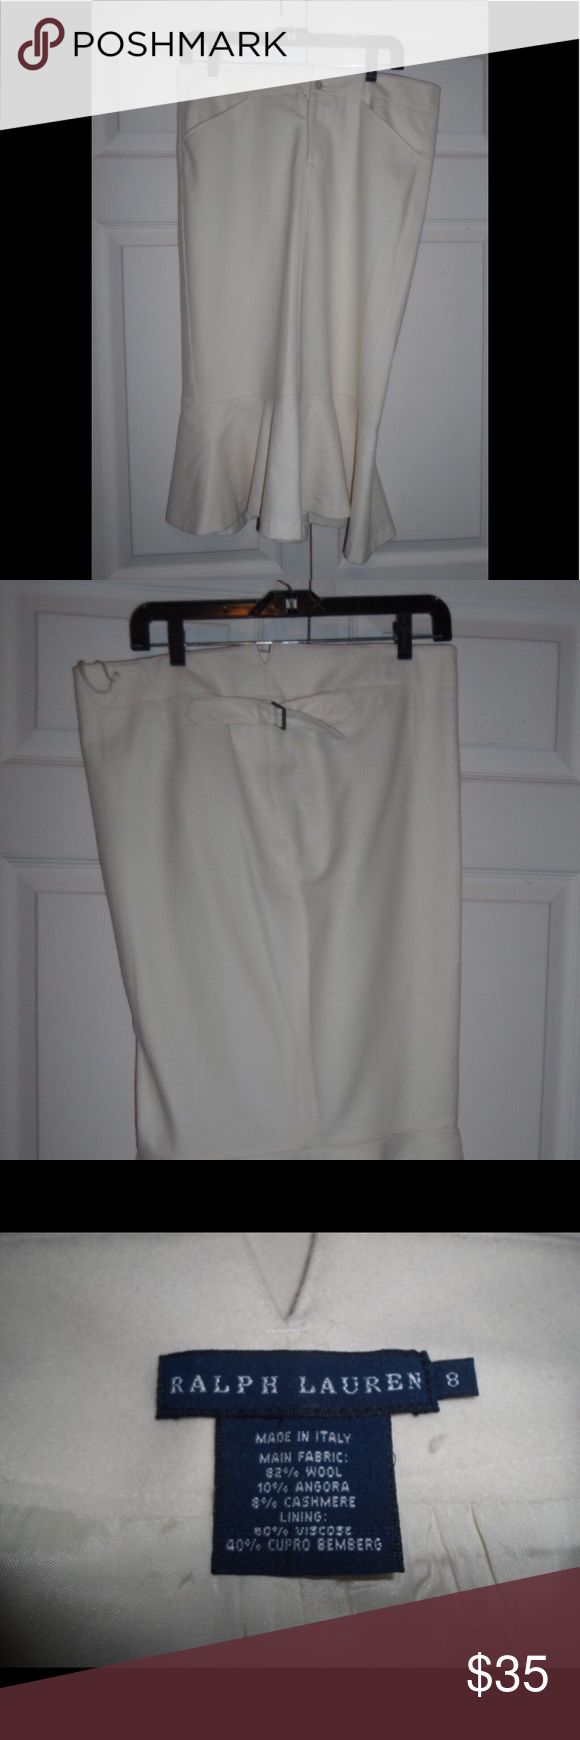 Ralph Lauren, Ivory Wool Blend Trumpet Skirt In good condition, no holes, tears, etc.  Made in Italy. Ralph Lauren Skirts Midi